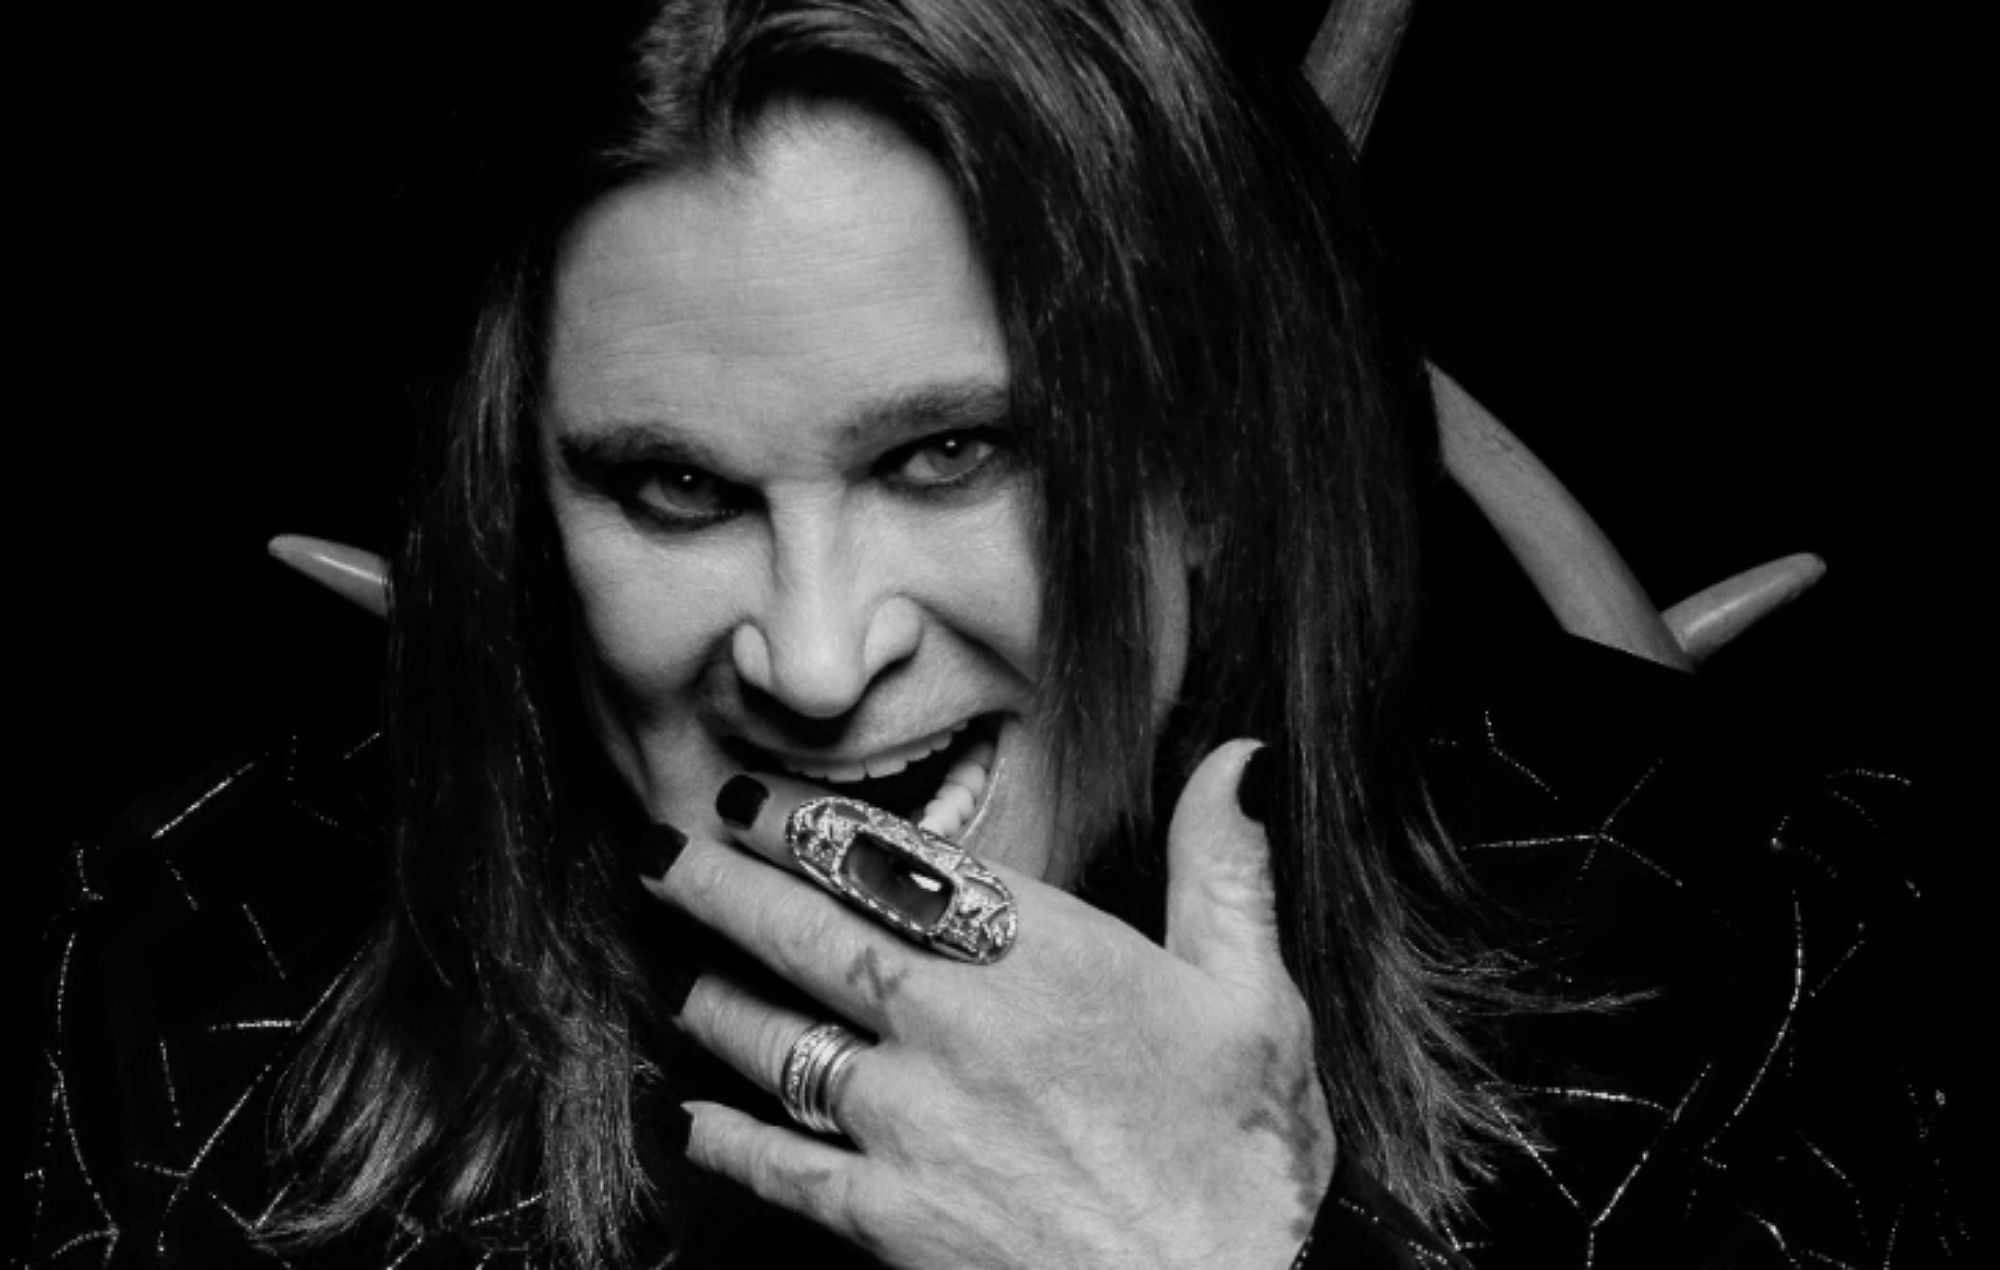 Ozzy Osbourne unveils 'Under The Graveyard' from new album 'Ordinary Man'